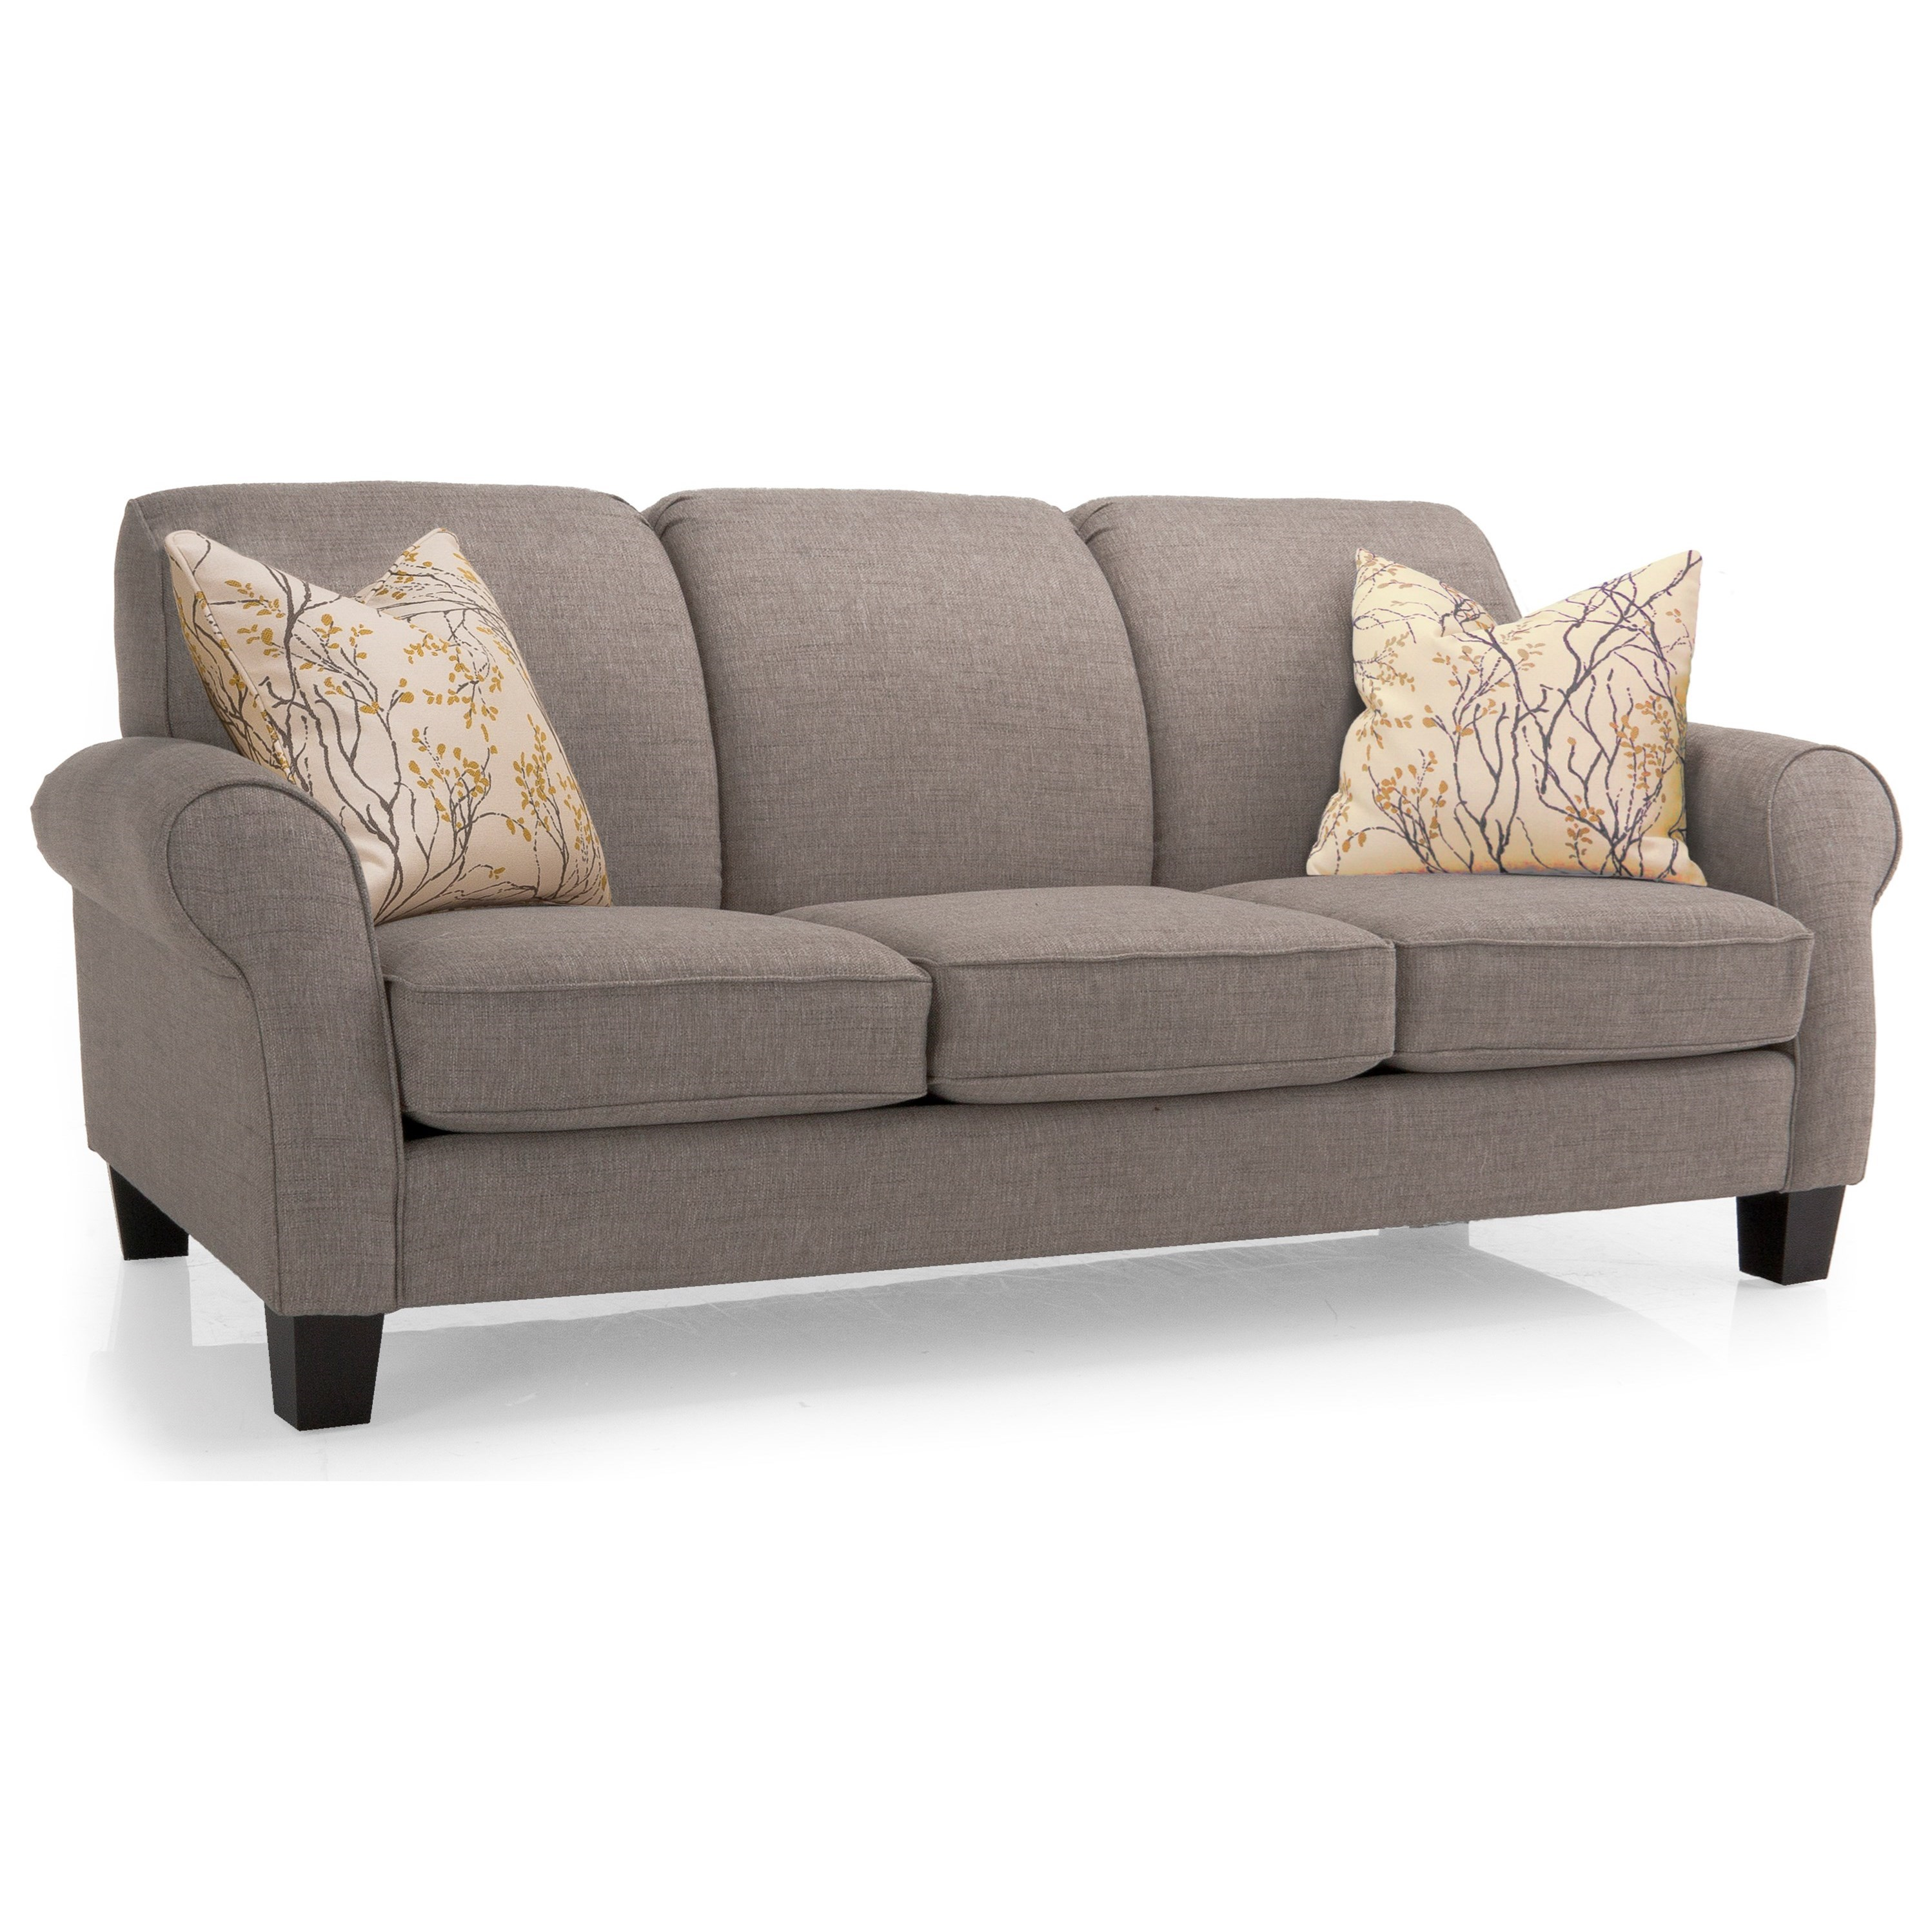 2025 Sofa by Decor-Rest at Rooms for Less